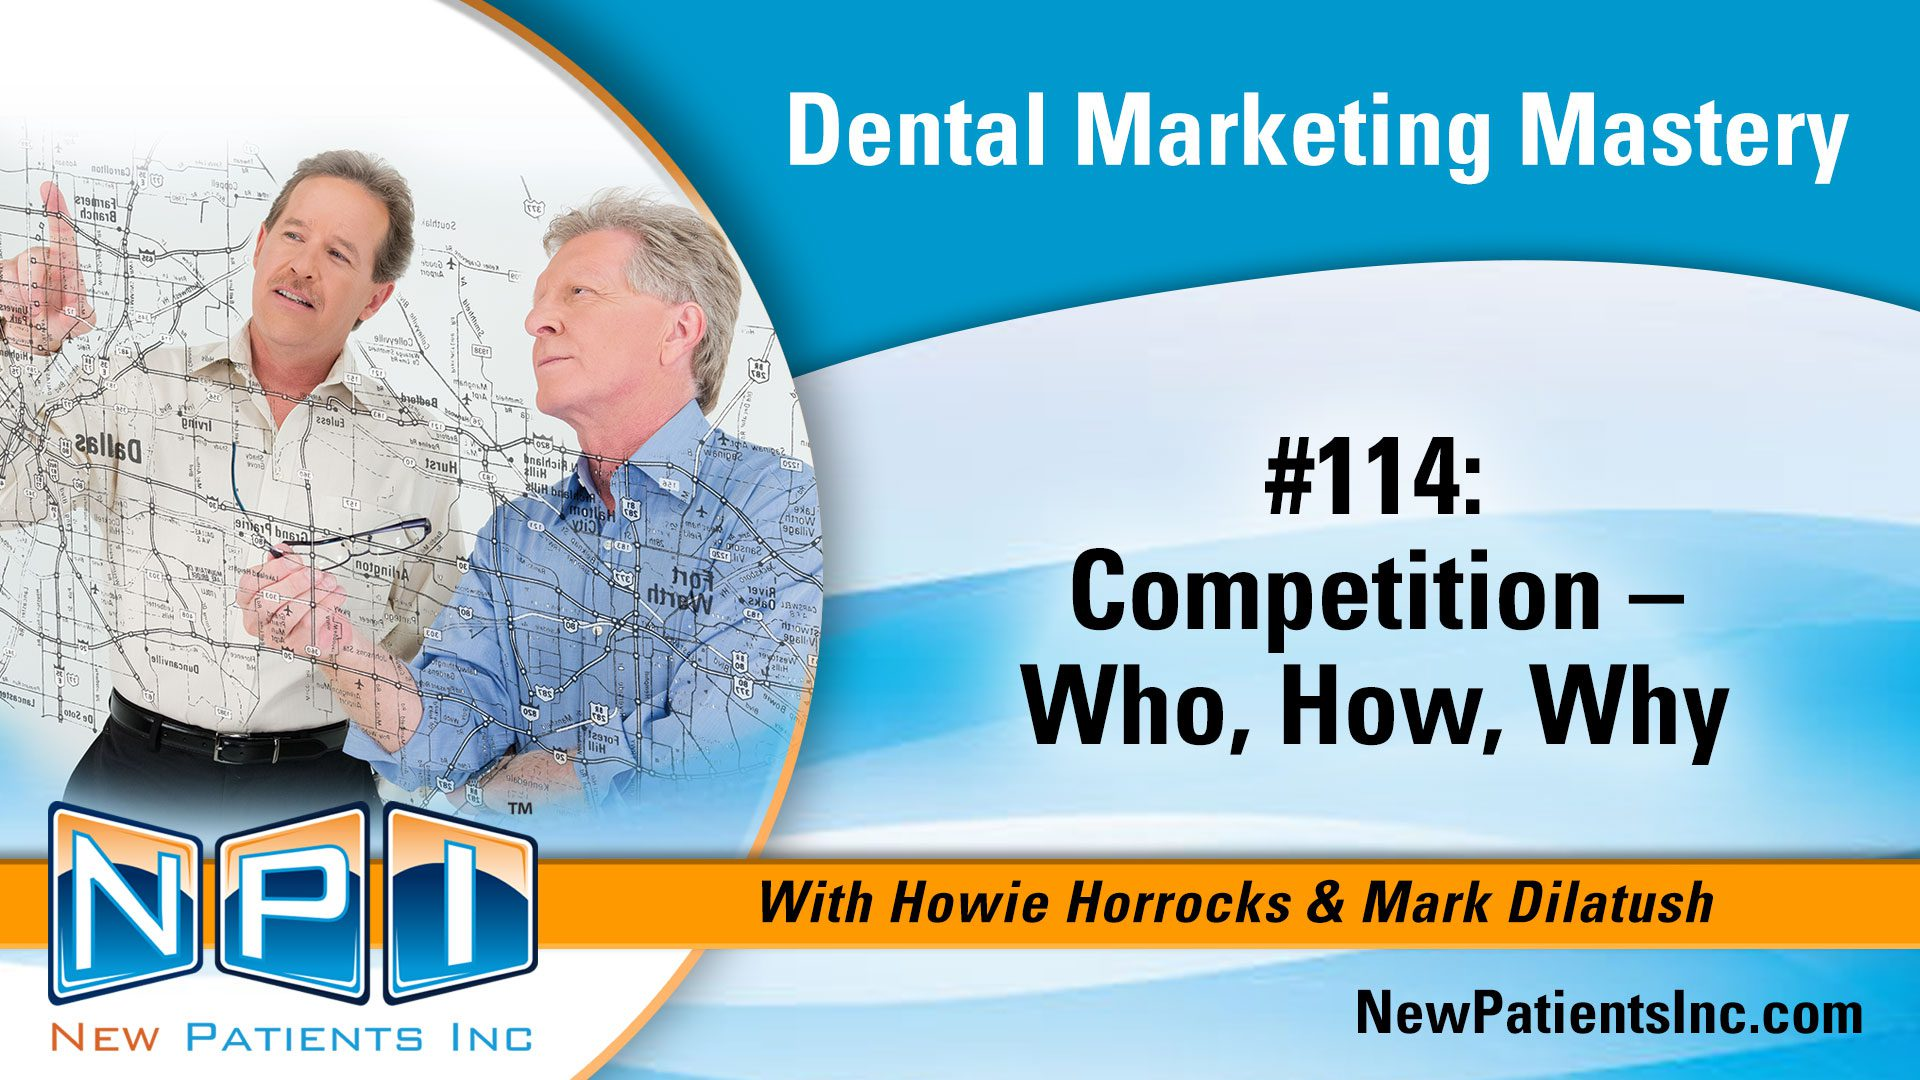 Dental Practice Competition – Who, How, Why?